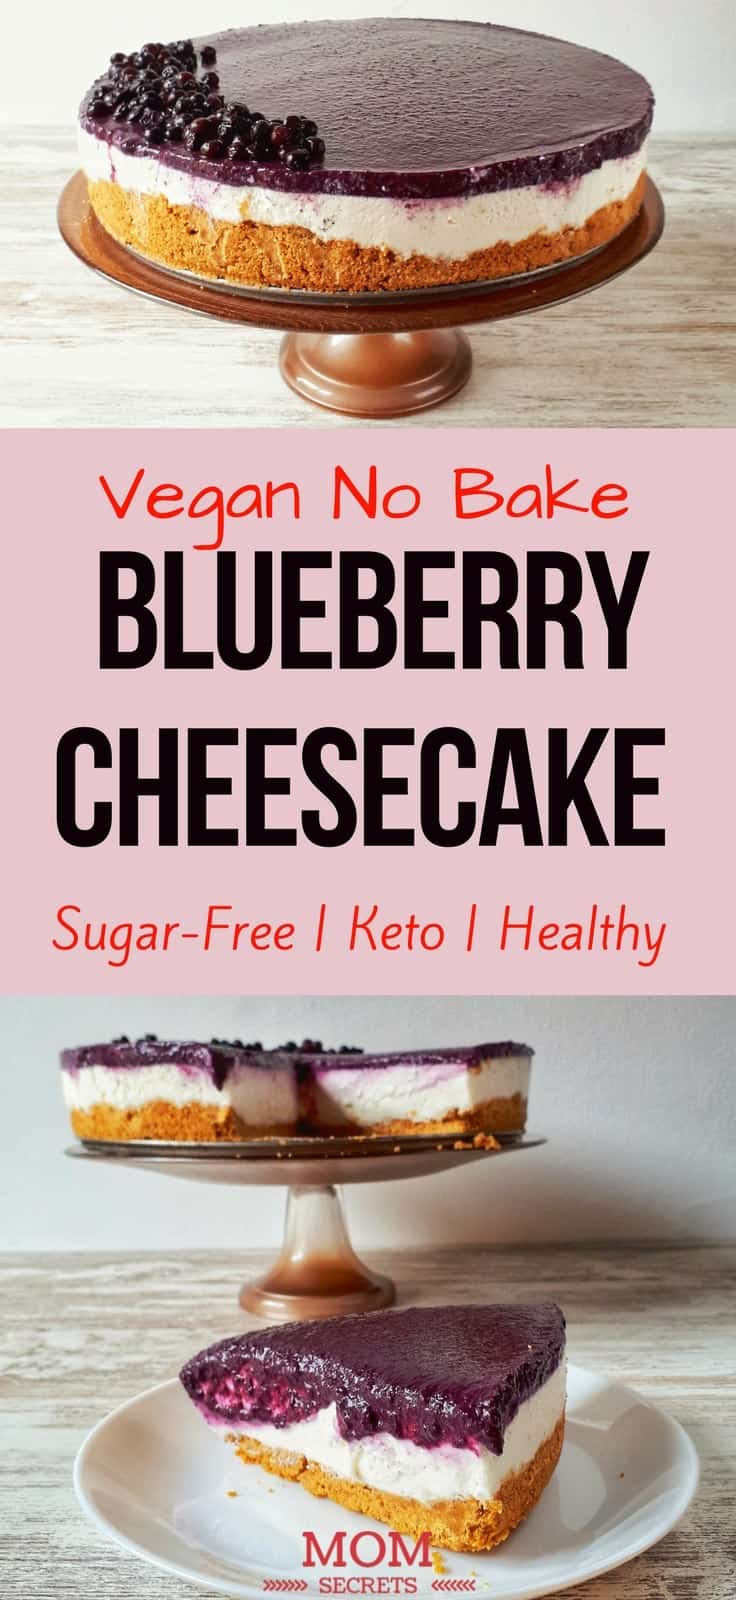 10 Easy Keto Dessert Recipes – keep your Ketogenic Diet guilt-free and indulge your sweet tooth self! These healthy Keto Desserts are quick to cook, some are no-bake, but all are low carb and will never break your ketosis. Keto Fat Bombs, chocolate, cream cheese, cheesecakes and other pleasures all Keto-friendly! #keto #ketogenic #ketodiet #recipe #desserts #diet #food #dessertfoodrecipes #ketorecipes #lowcarb